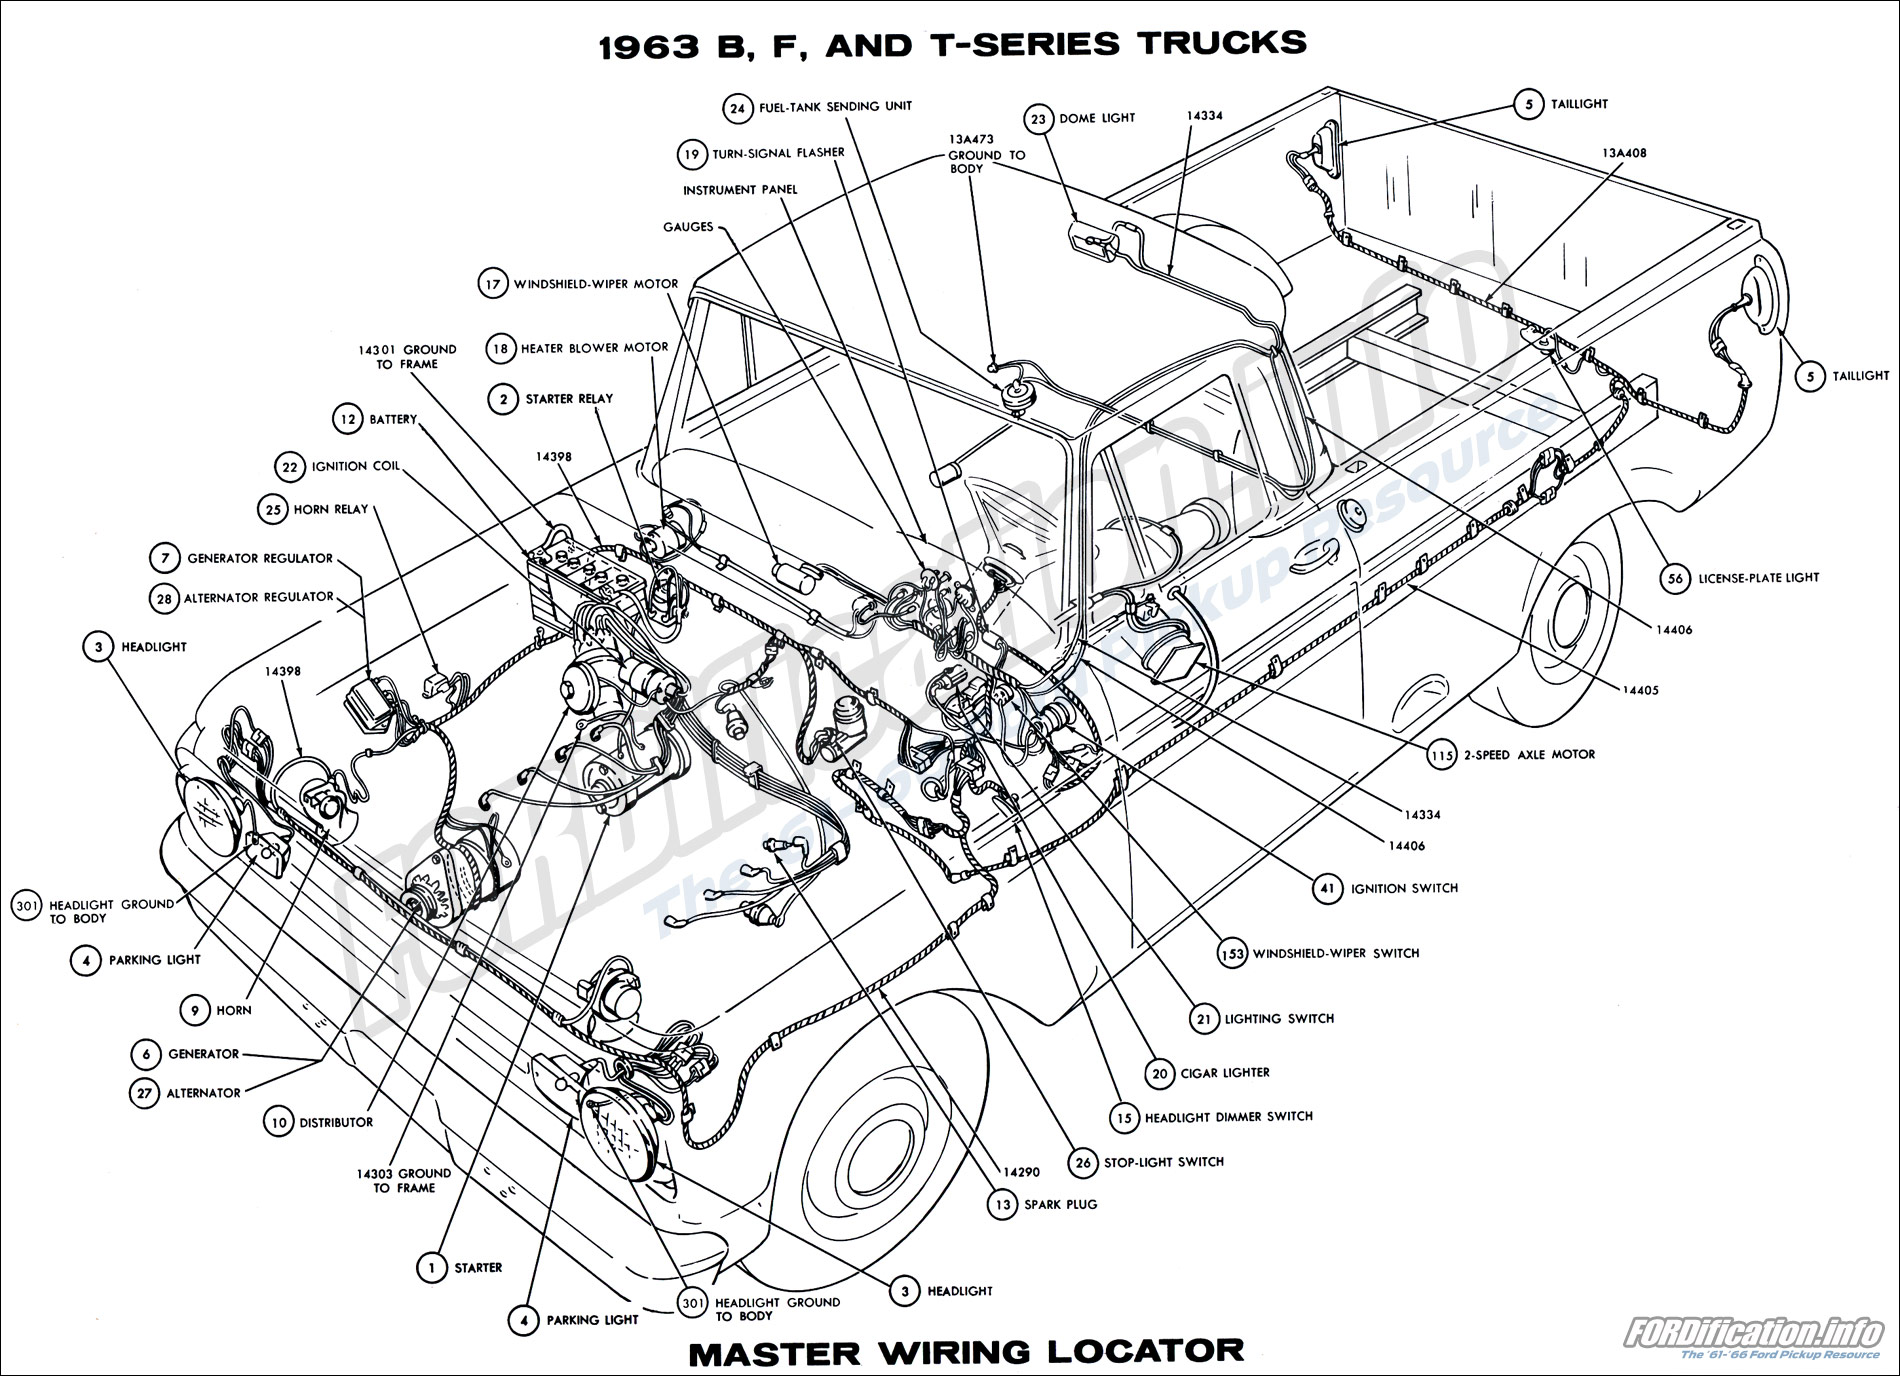 63masterlocator 1963 ford truck wiring diagrams fordification info the '61 '66 Ford Truck Wiring Diagrams at crackthecode.co